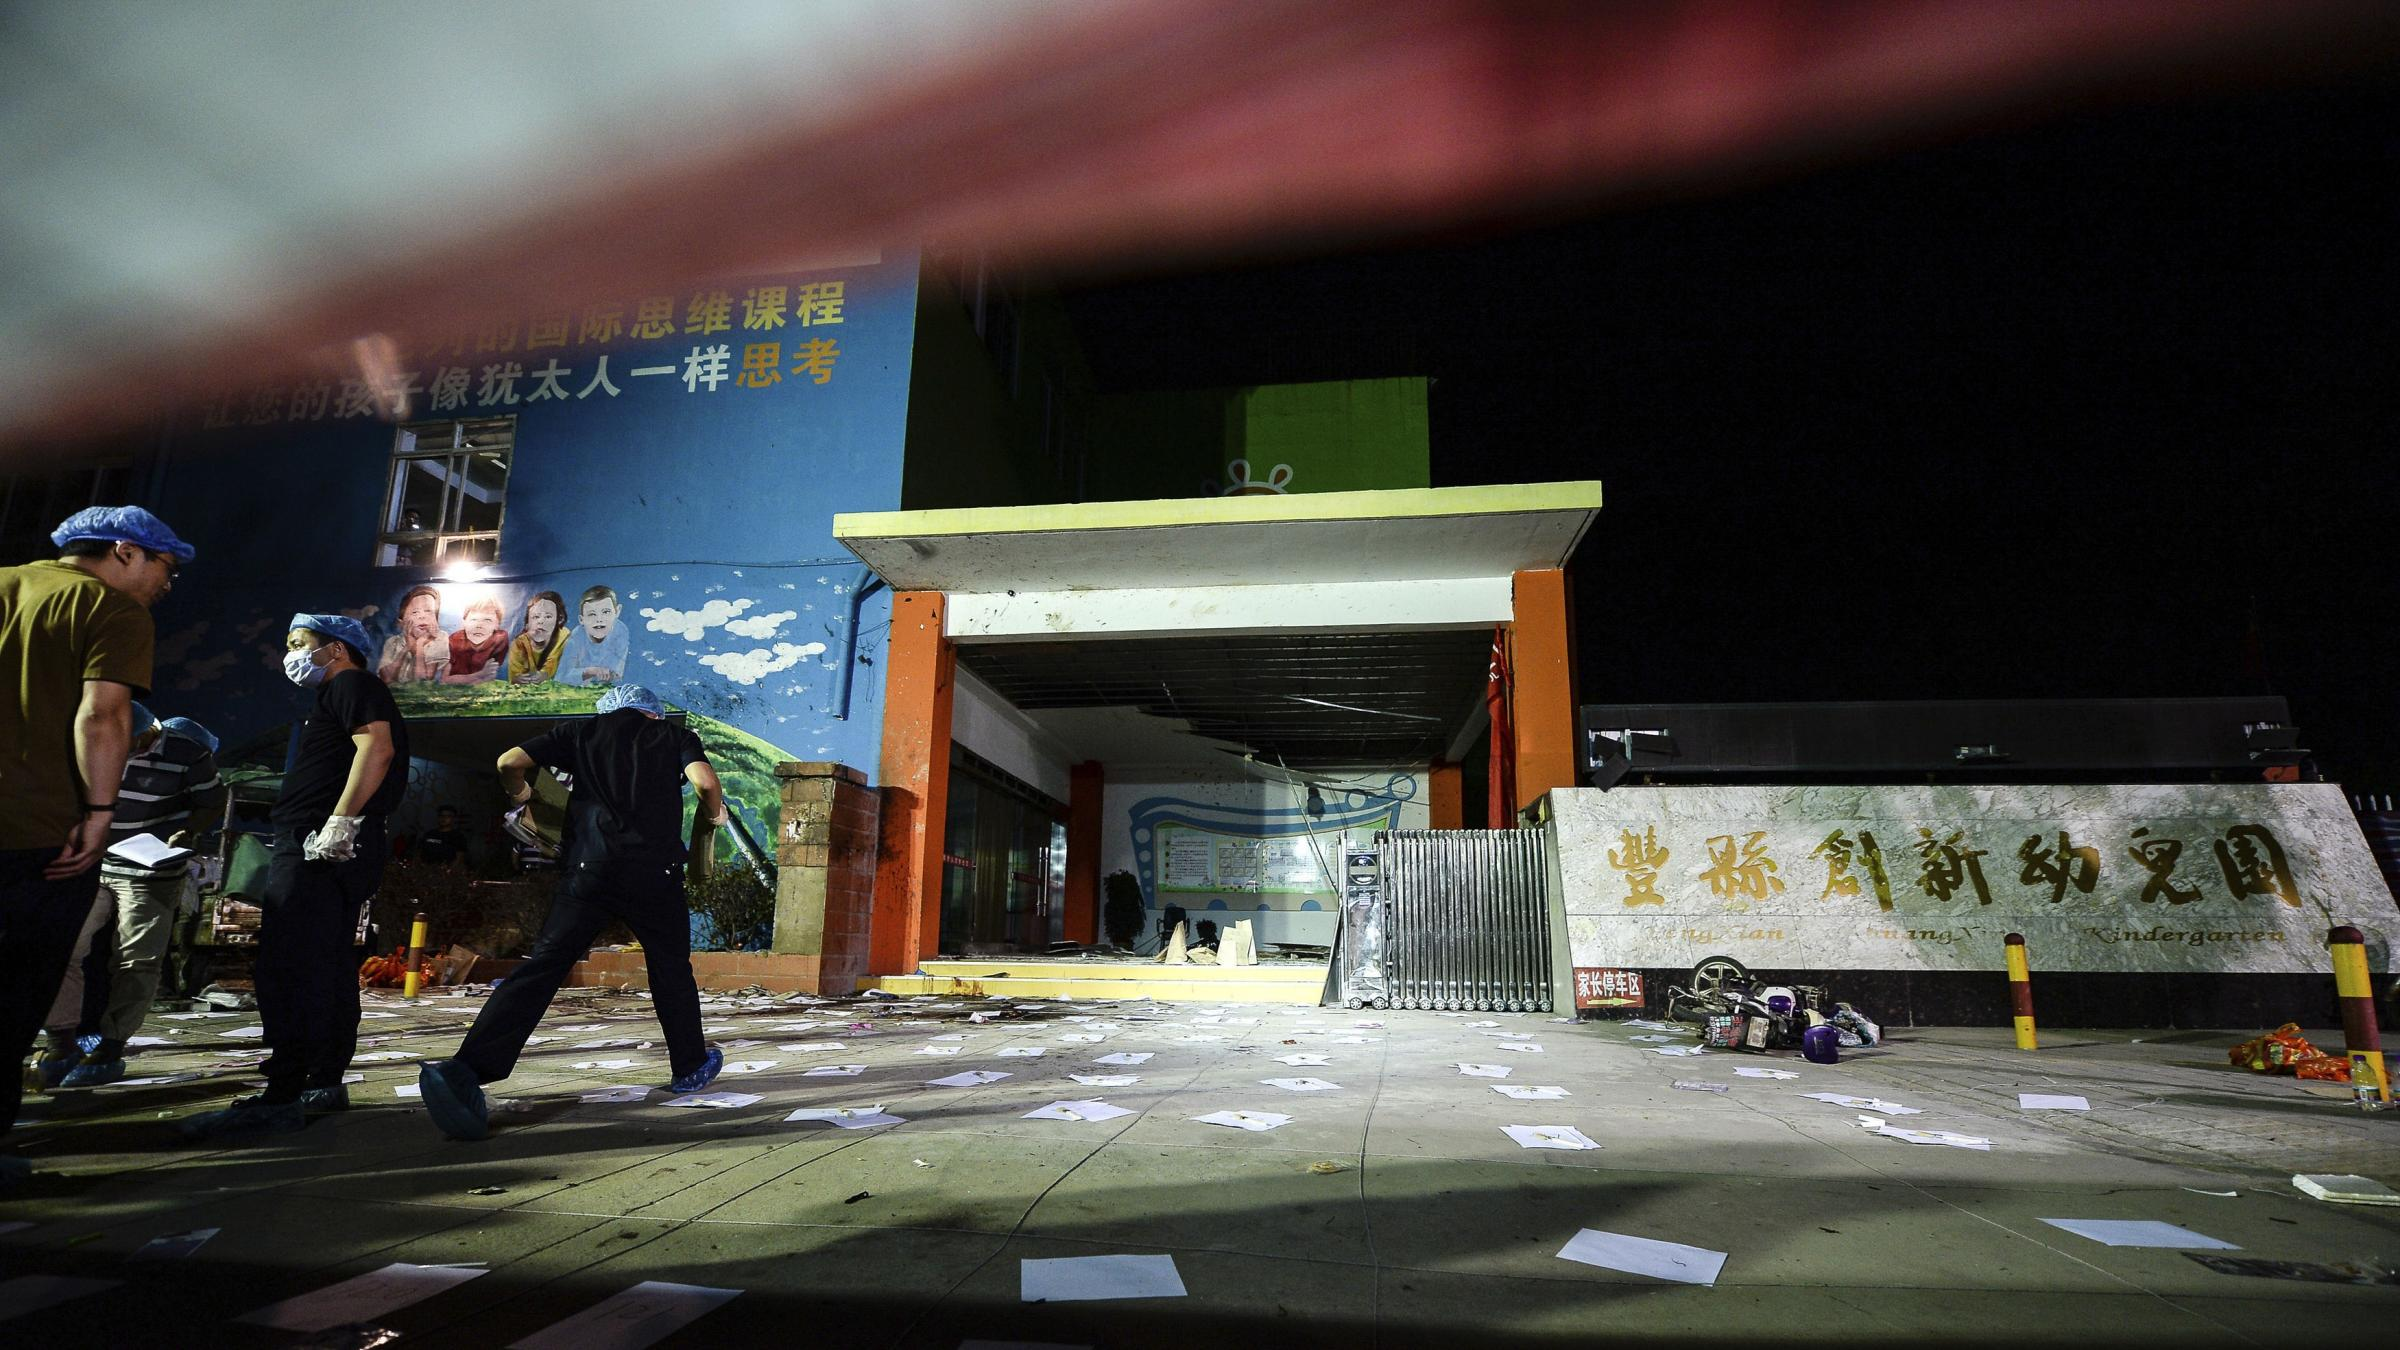 At least 7 dead, 59 injured in China kindergarten blast